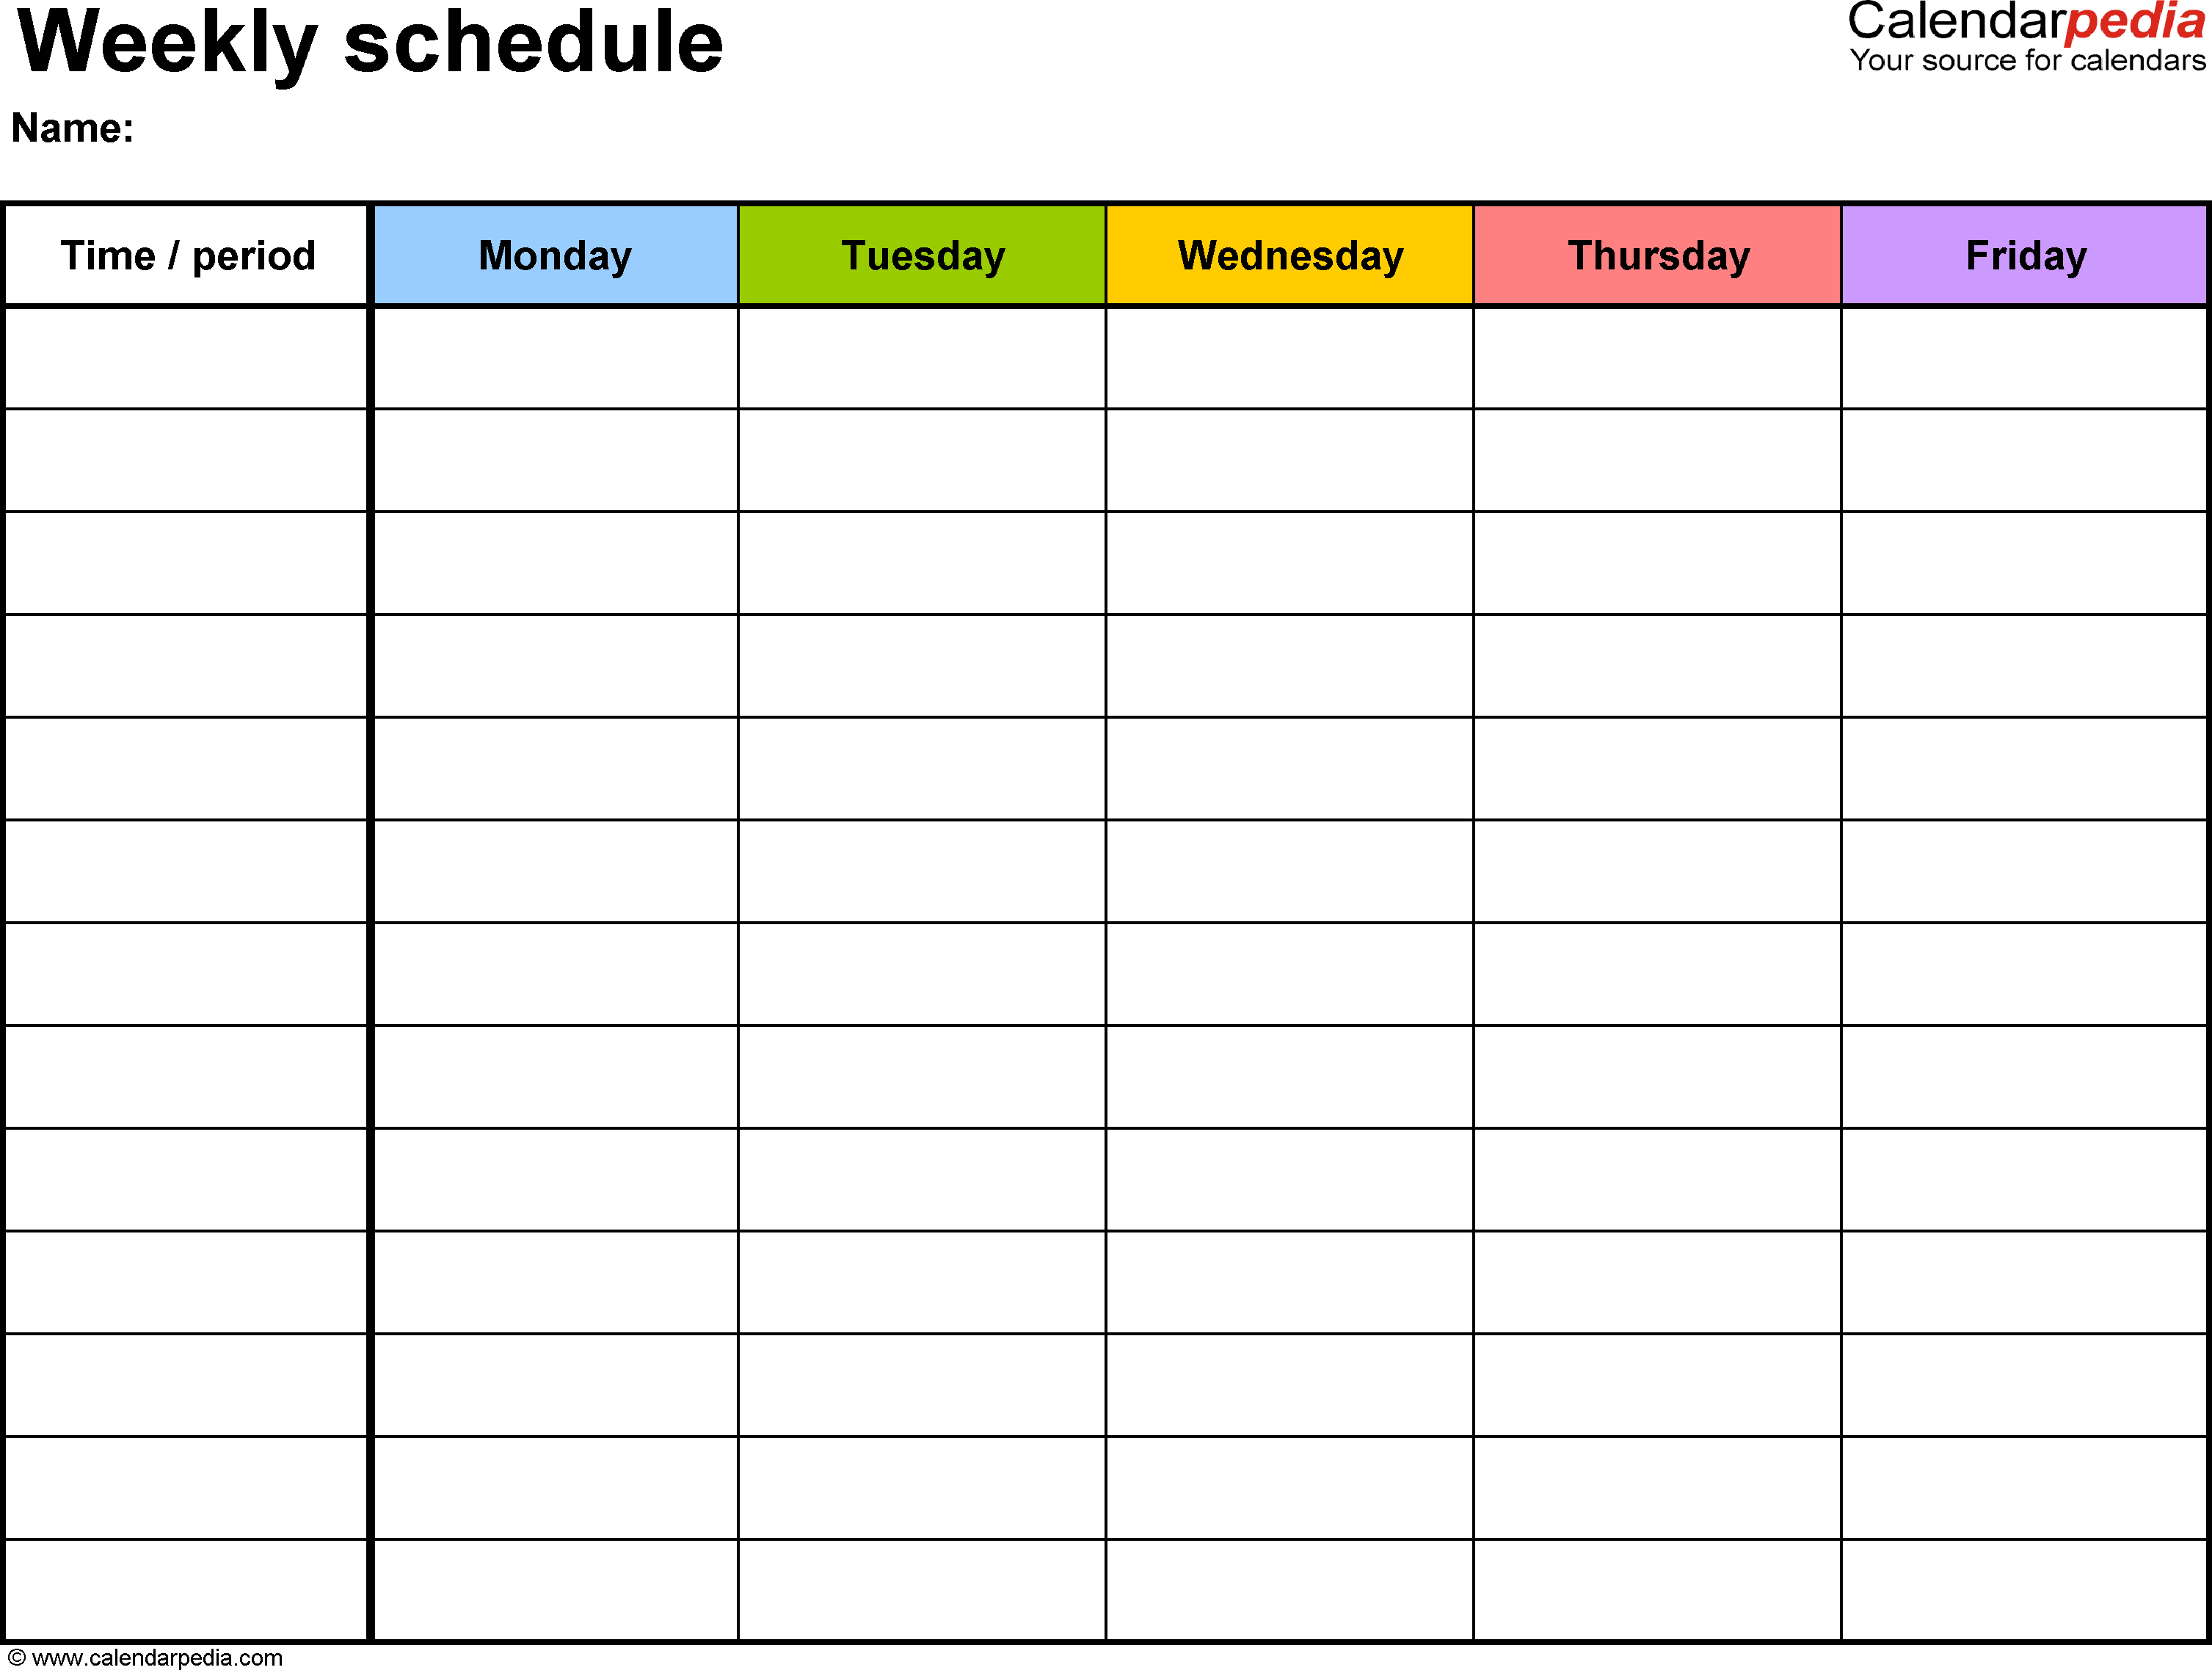 Free Weekly Schedule Templates For Word - 18 Templates with regard to Weekly Schedule Template Free To Print